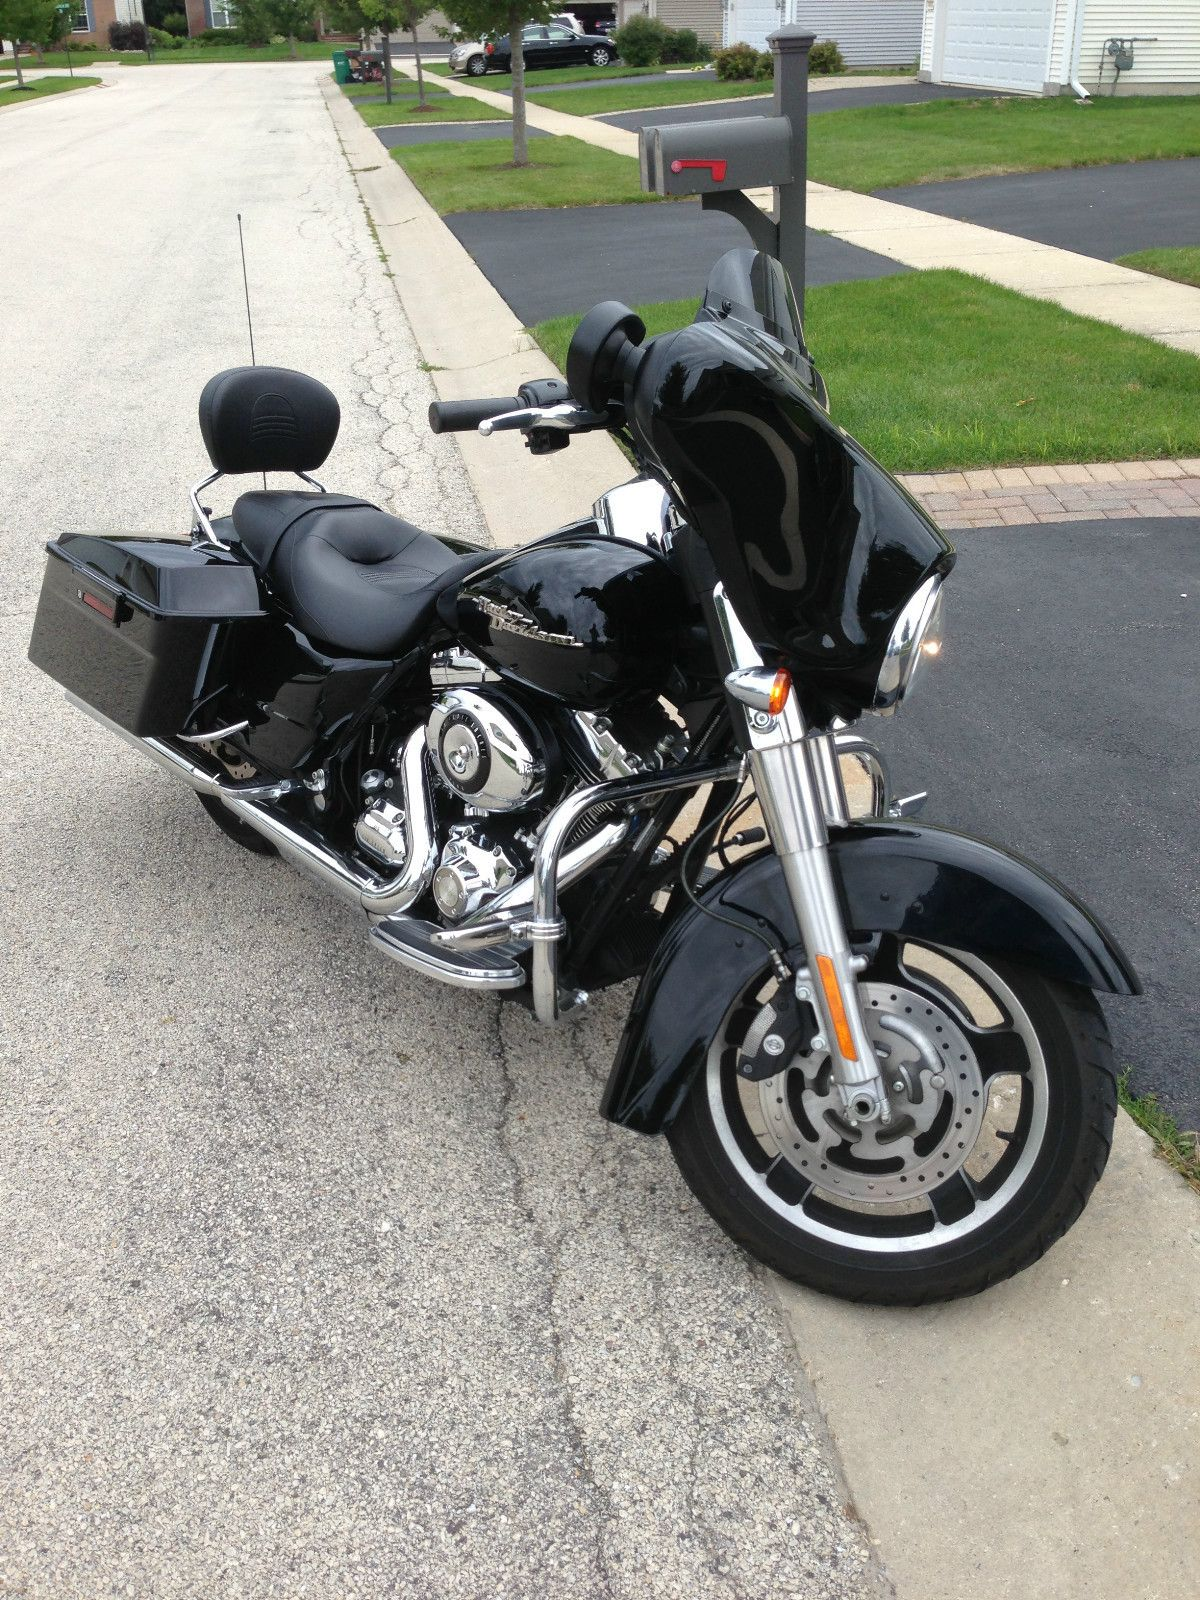 medium resolution of 2009 harley davidson touring all models service manual instant download why wait if